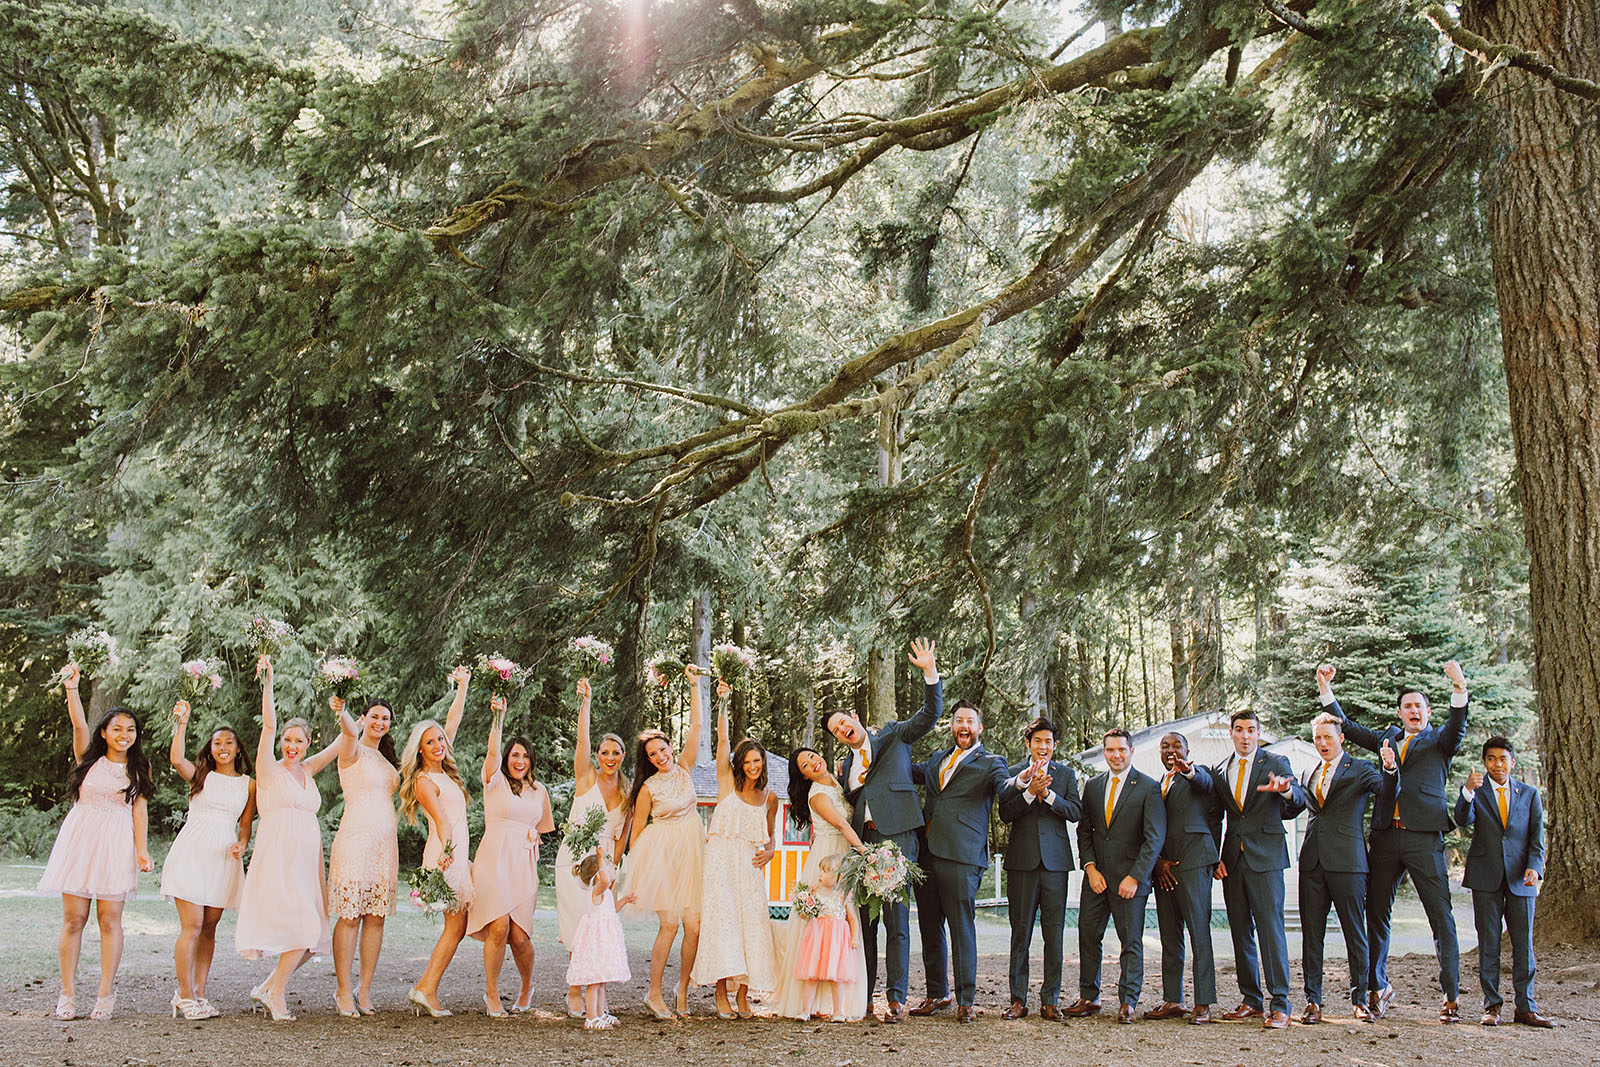 Group photo of the wedding party cheering | Olympic National Park Wedding